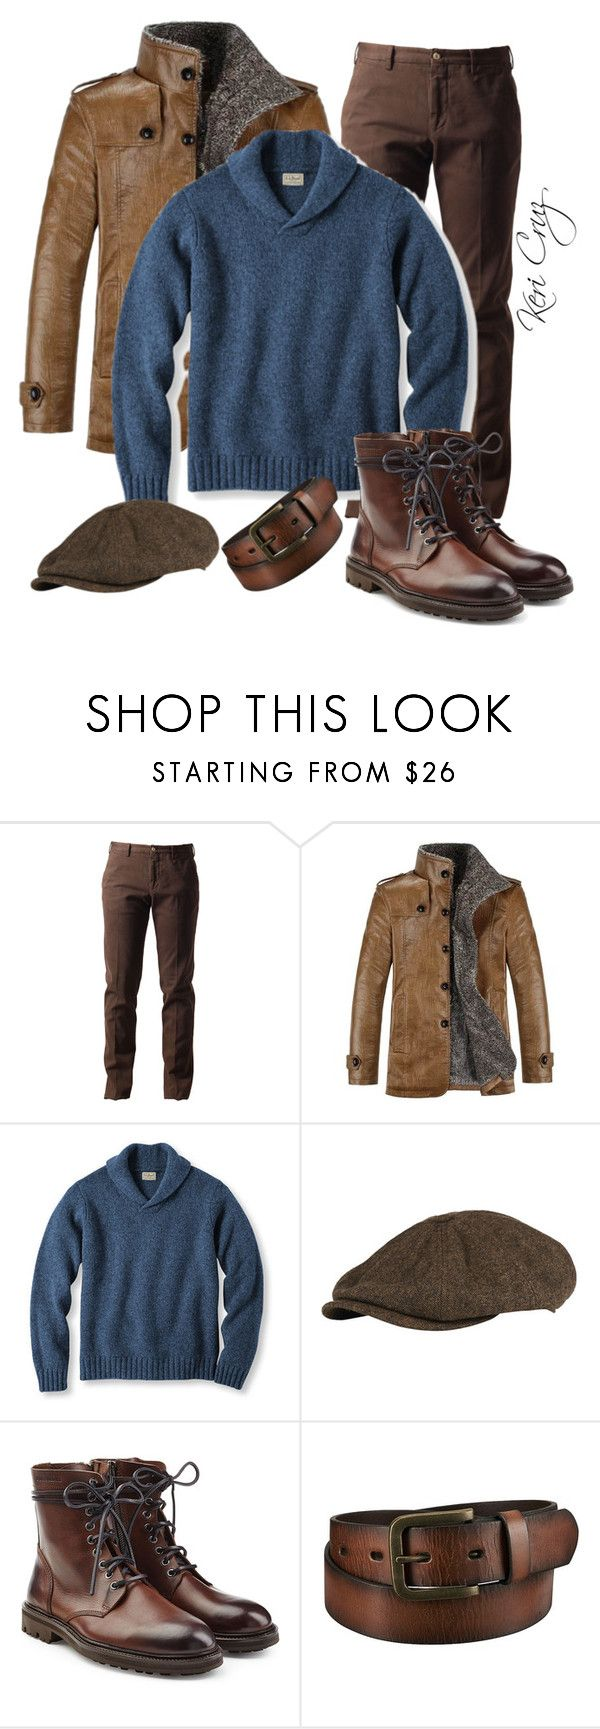 """Men's Winter"" by keri-cruz ❤ liked on Polyvore featuring Browns, Superdry, Zadig & Voltaire, Uniqlo, men's fashion and menswear"